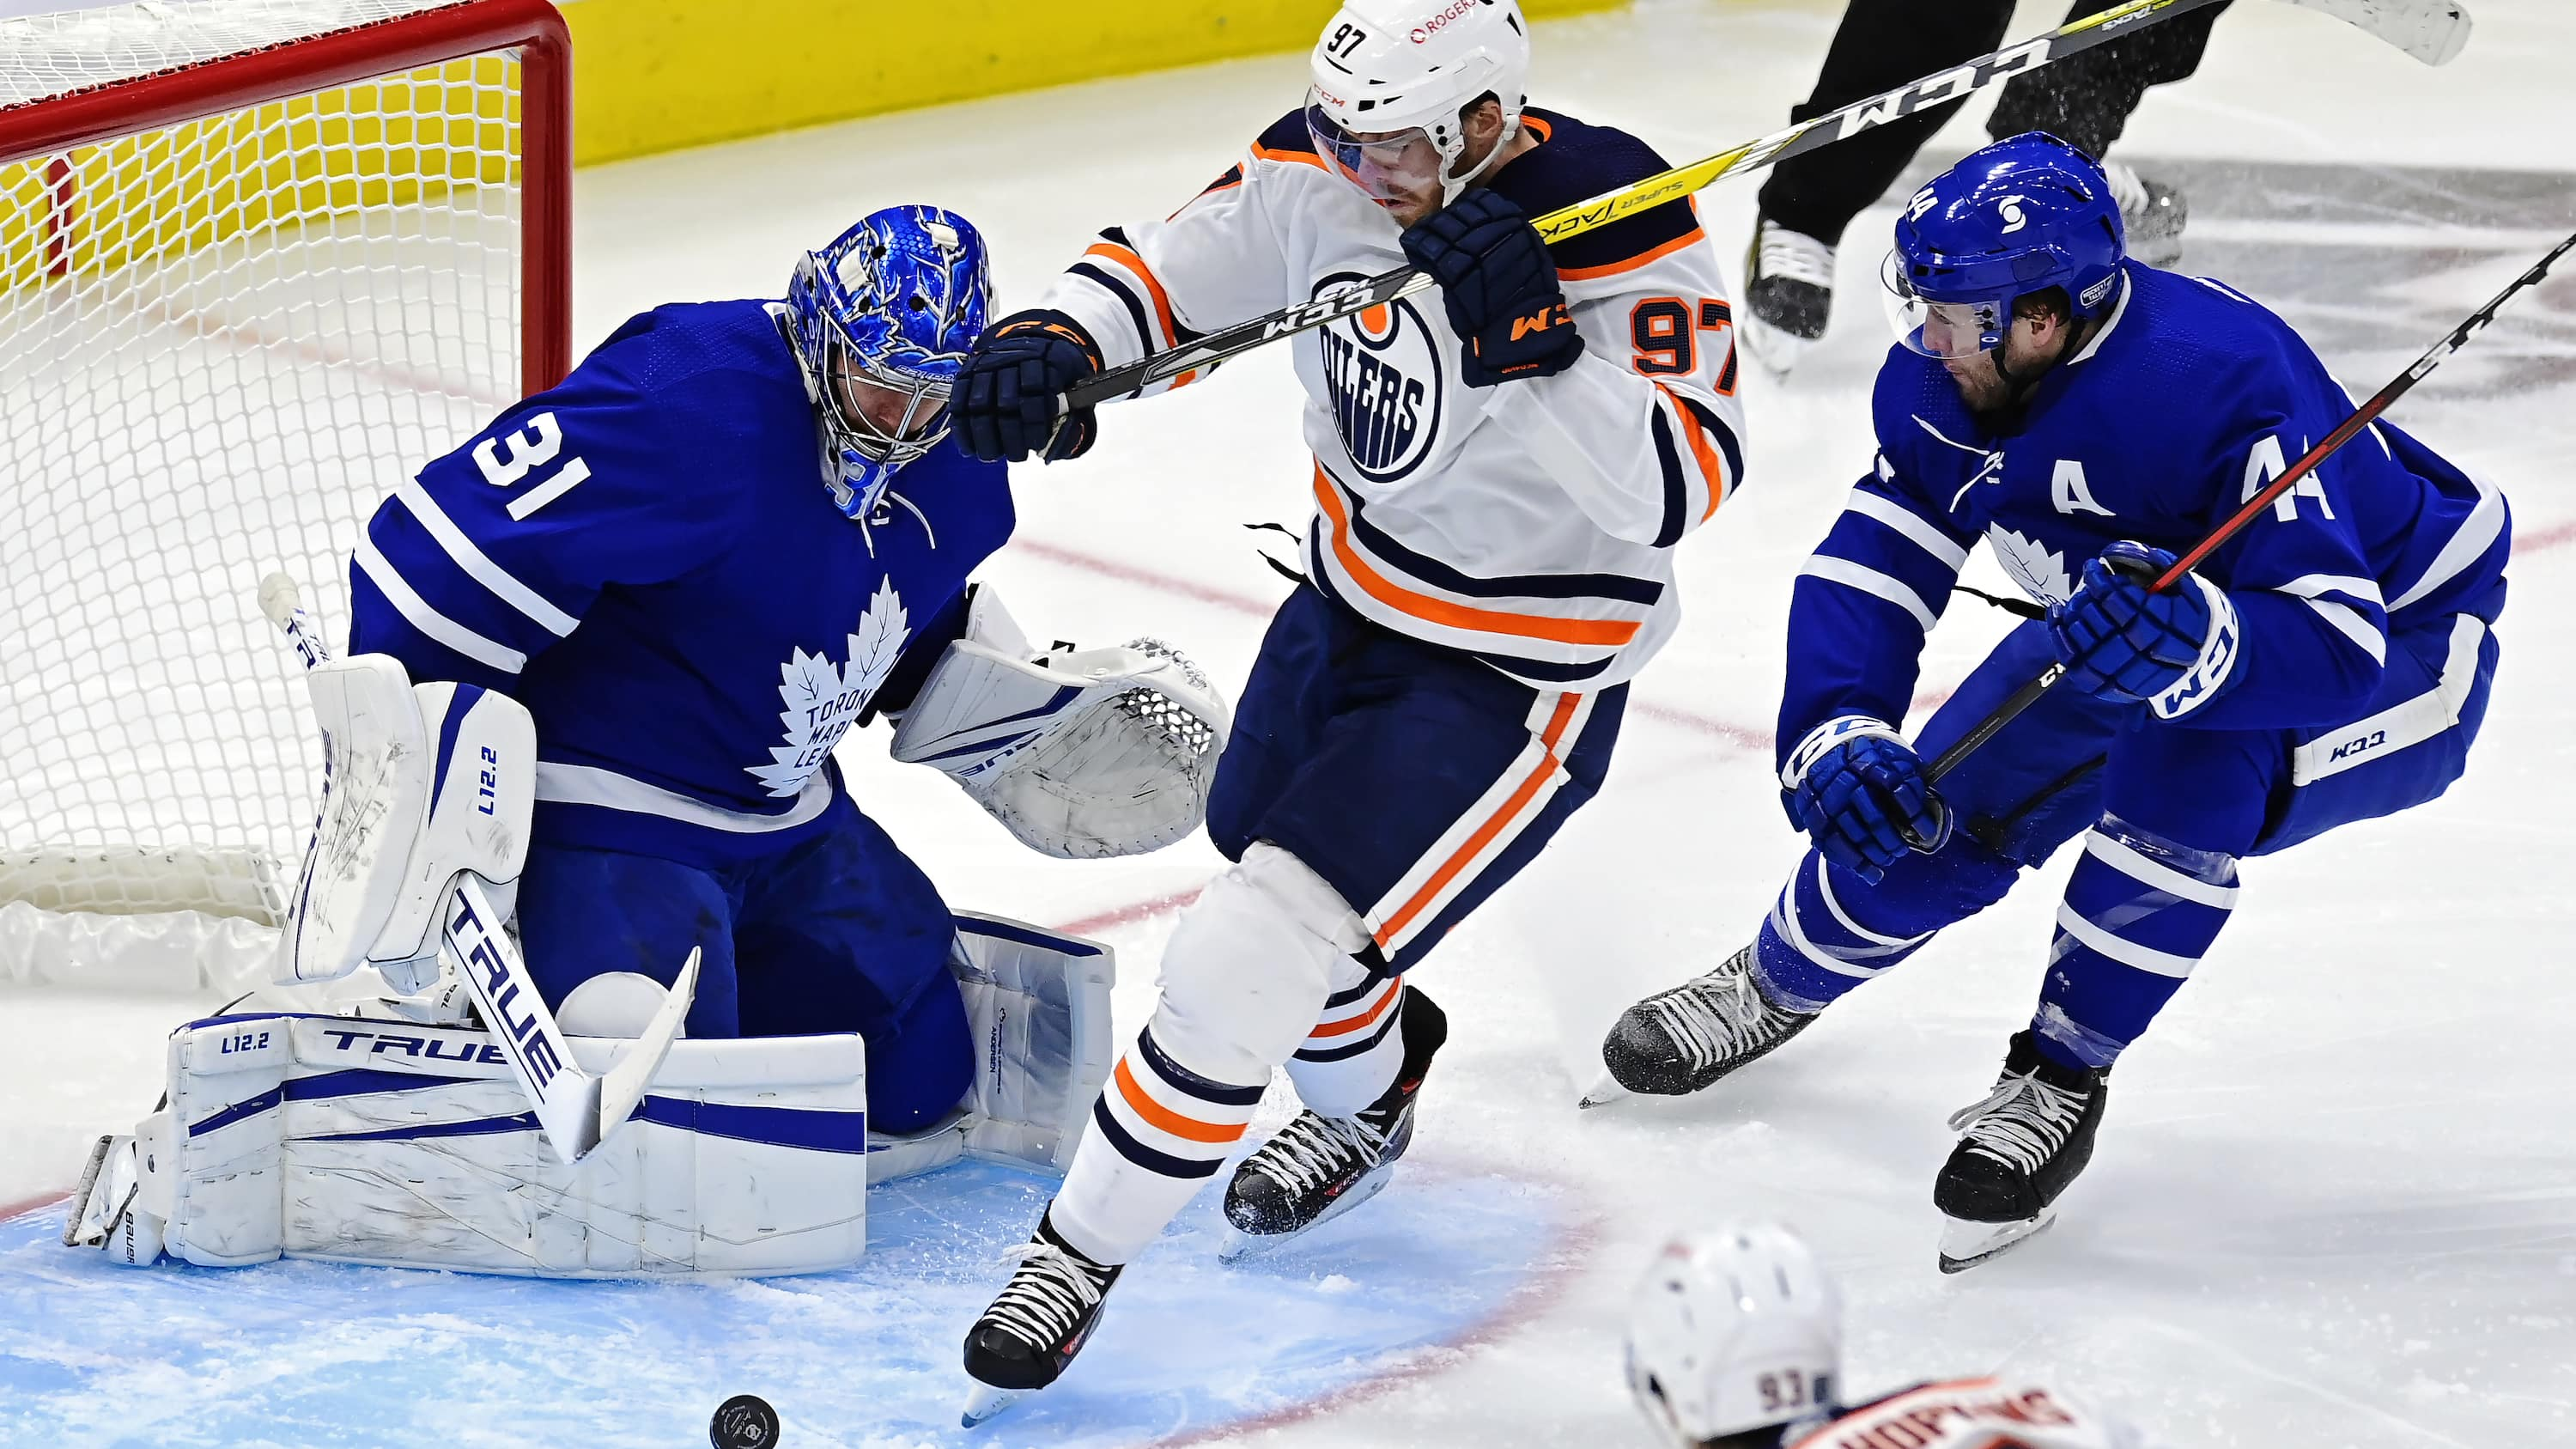 Maple Leafs edge Oilers with winner from Tavares Sports45 minutes agoVideo1:02